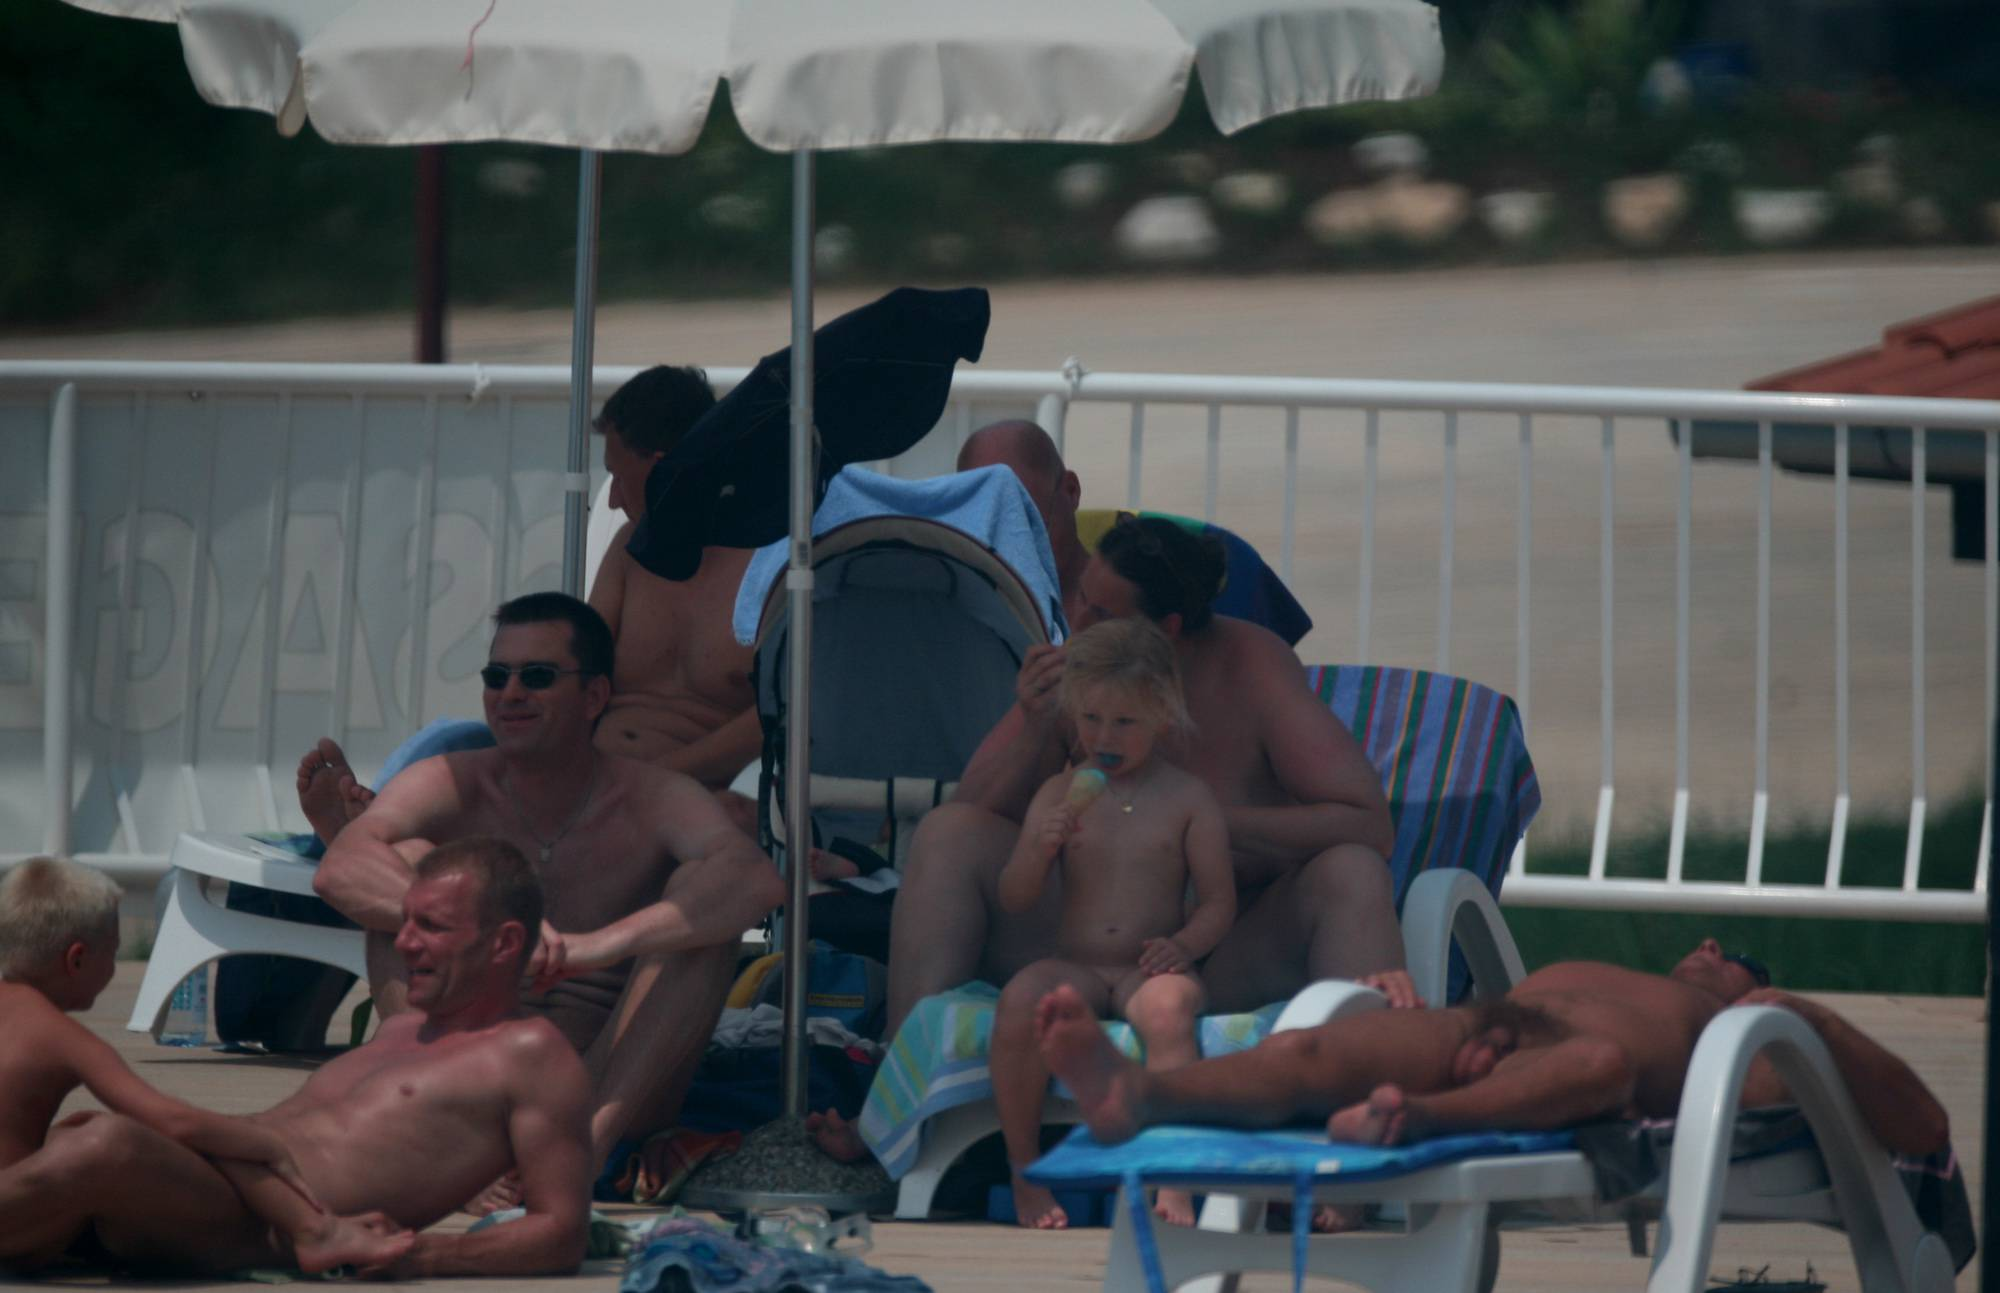 Nudist Pictures Naturist Pool Youngsters - 2